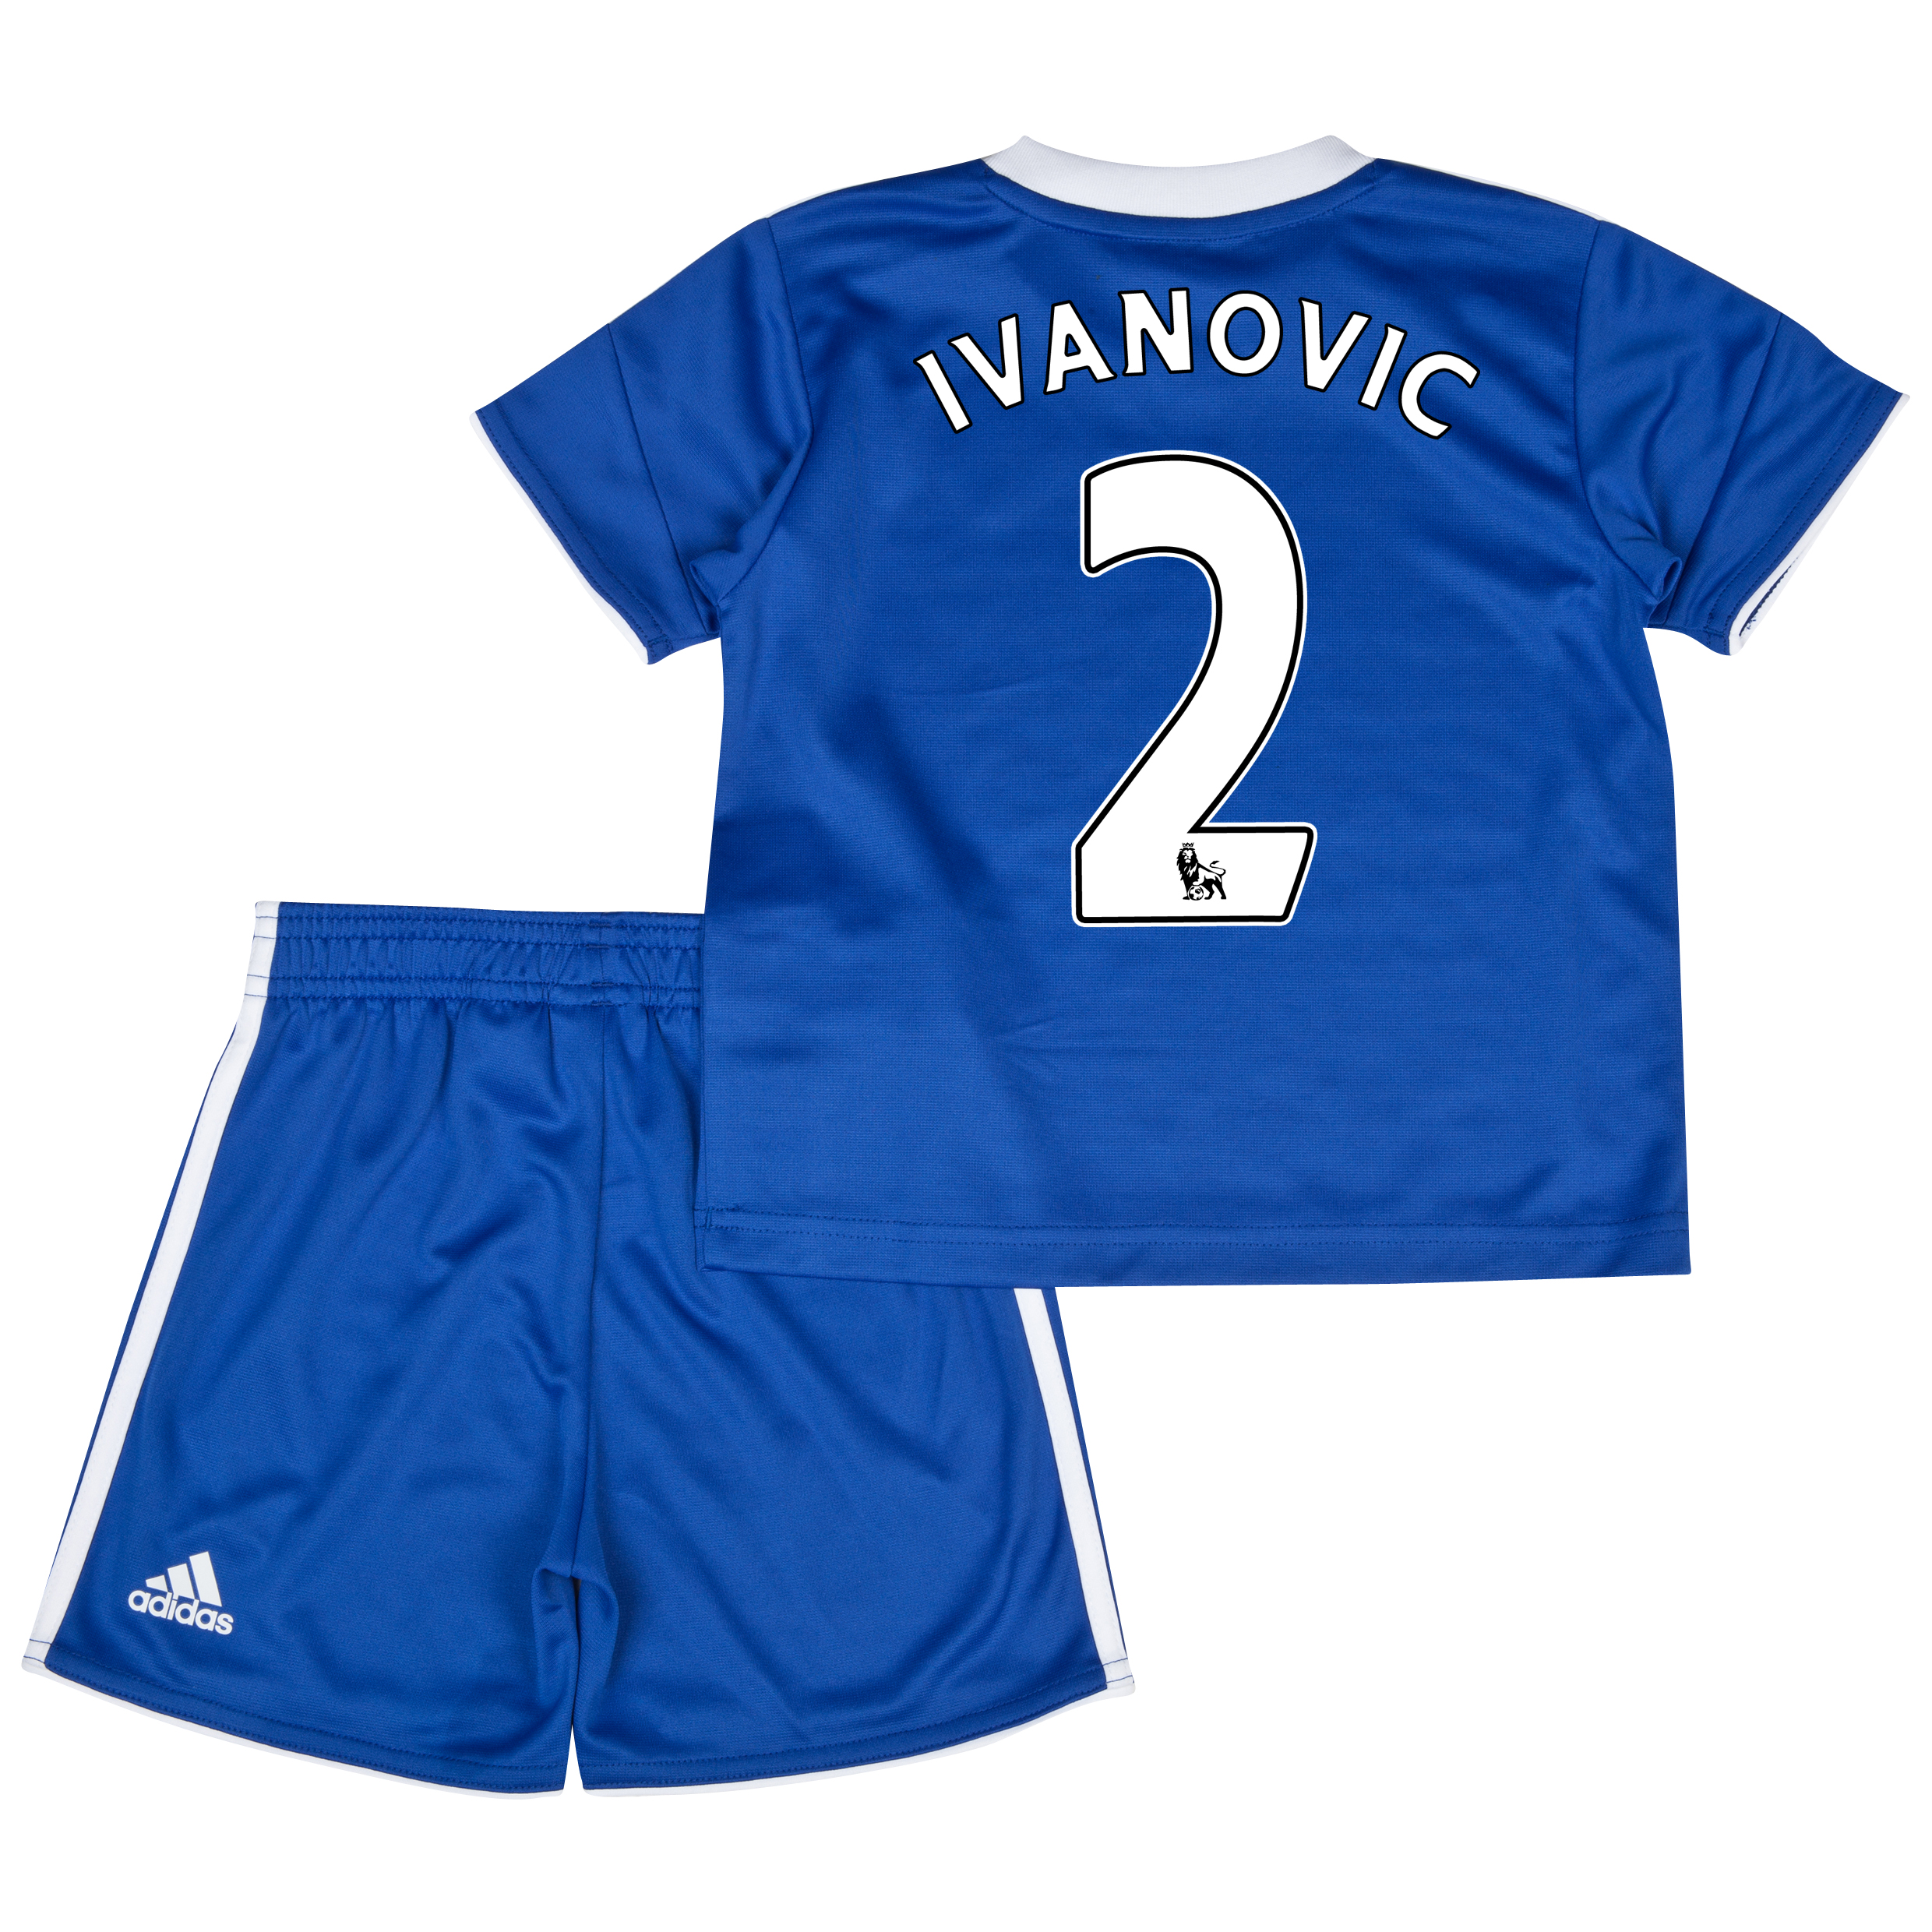 Chelsea Home Mini Kit 2013/14 with Ivanovic 2 printing